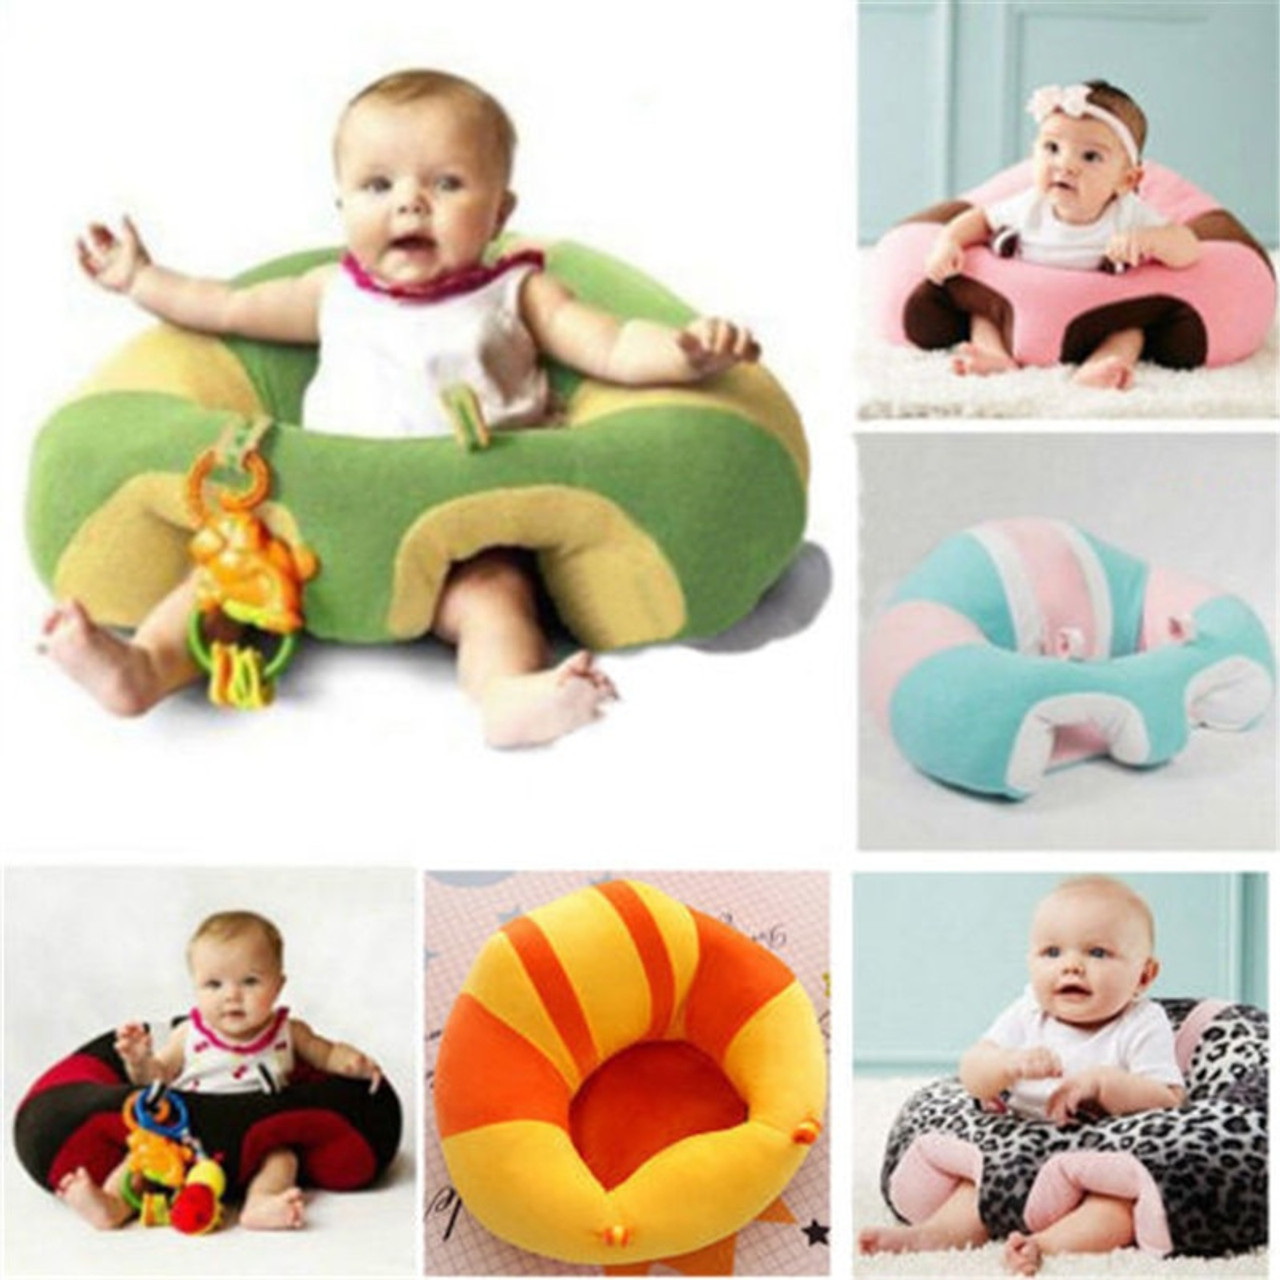 Comfortable Kids Baby Support Seat Sit Up Soft Chair Cushion Sofa Plush Pillow Toy Bean Bags Seats Chairs Onshopdeals Com